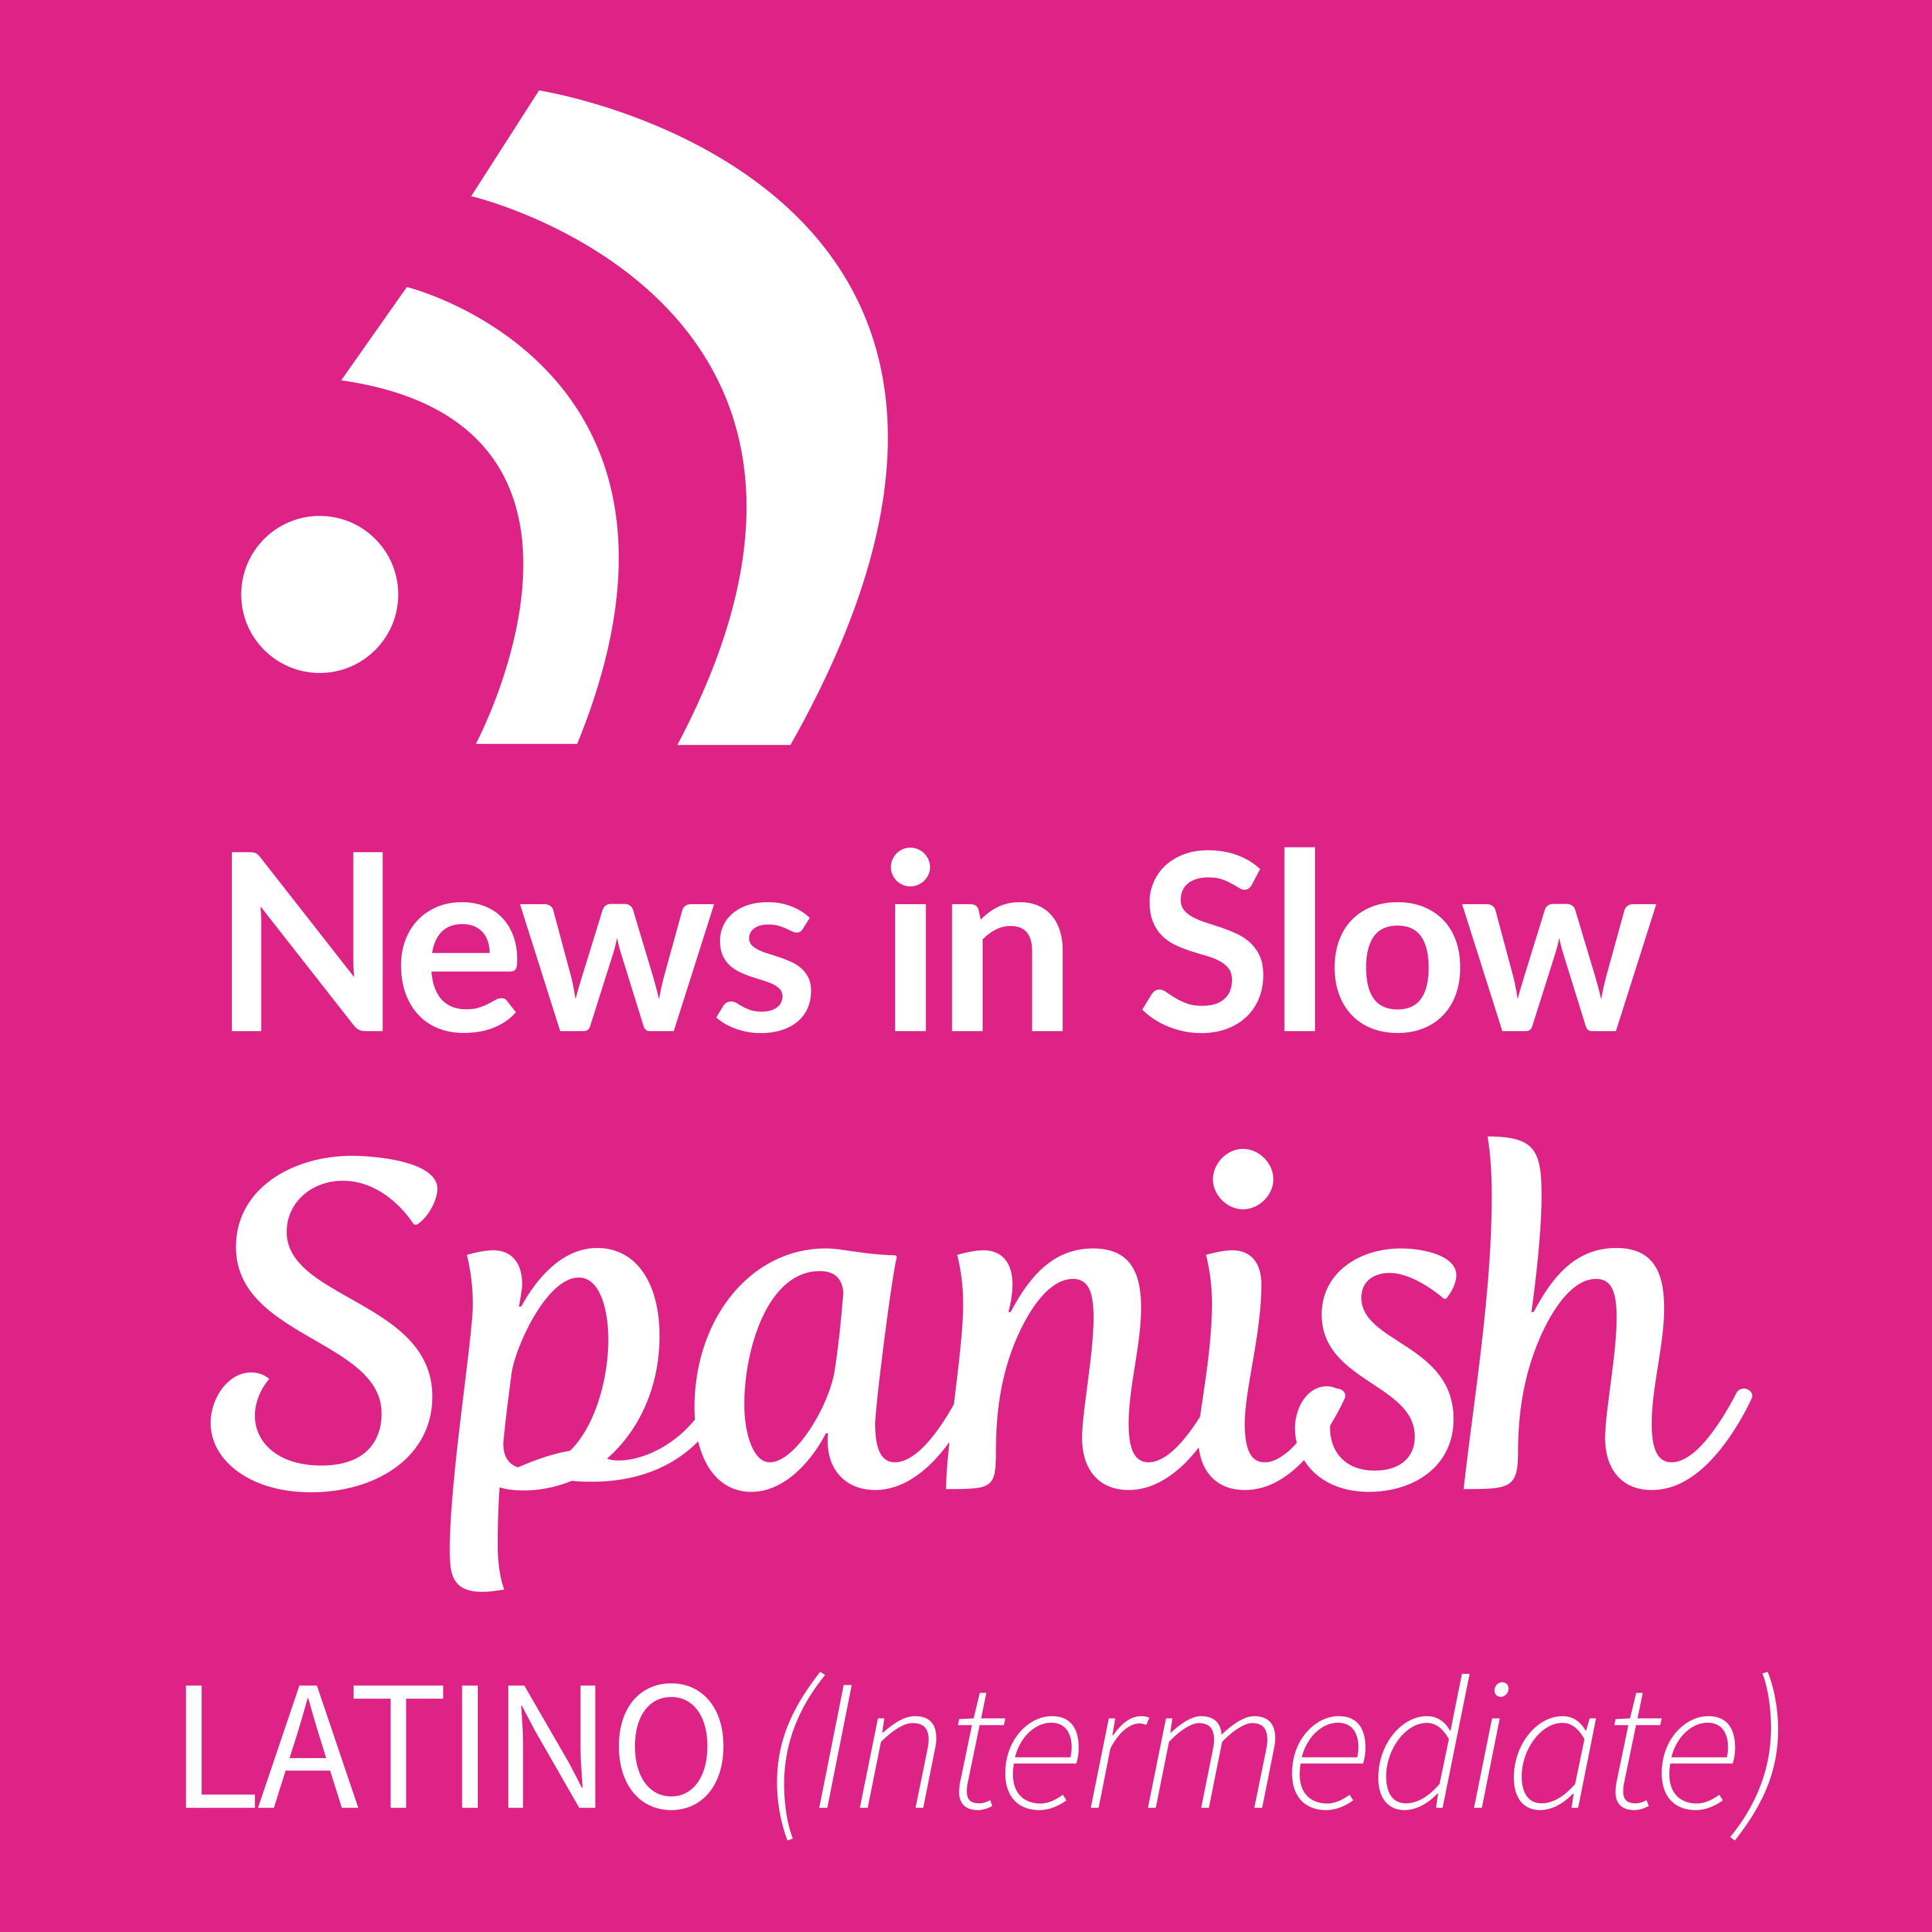 News in Slow Spanish Latino - # 183 - Learn Spanish through current events